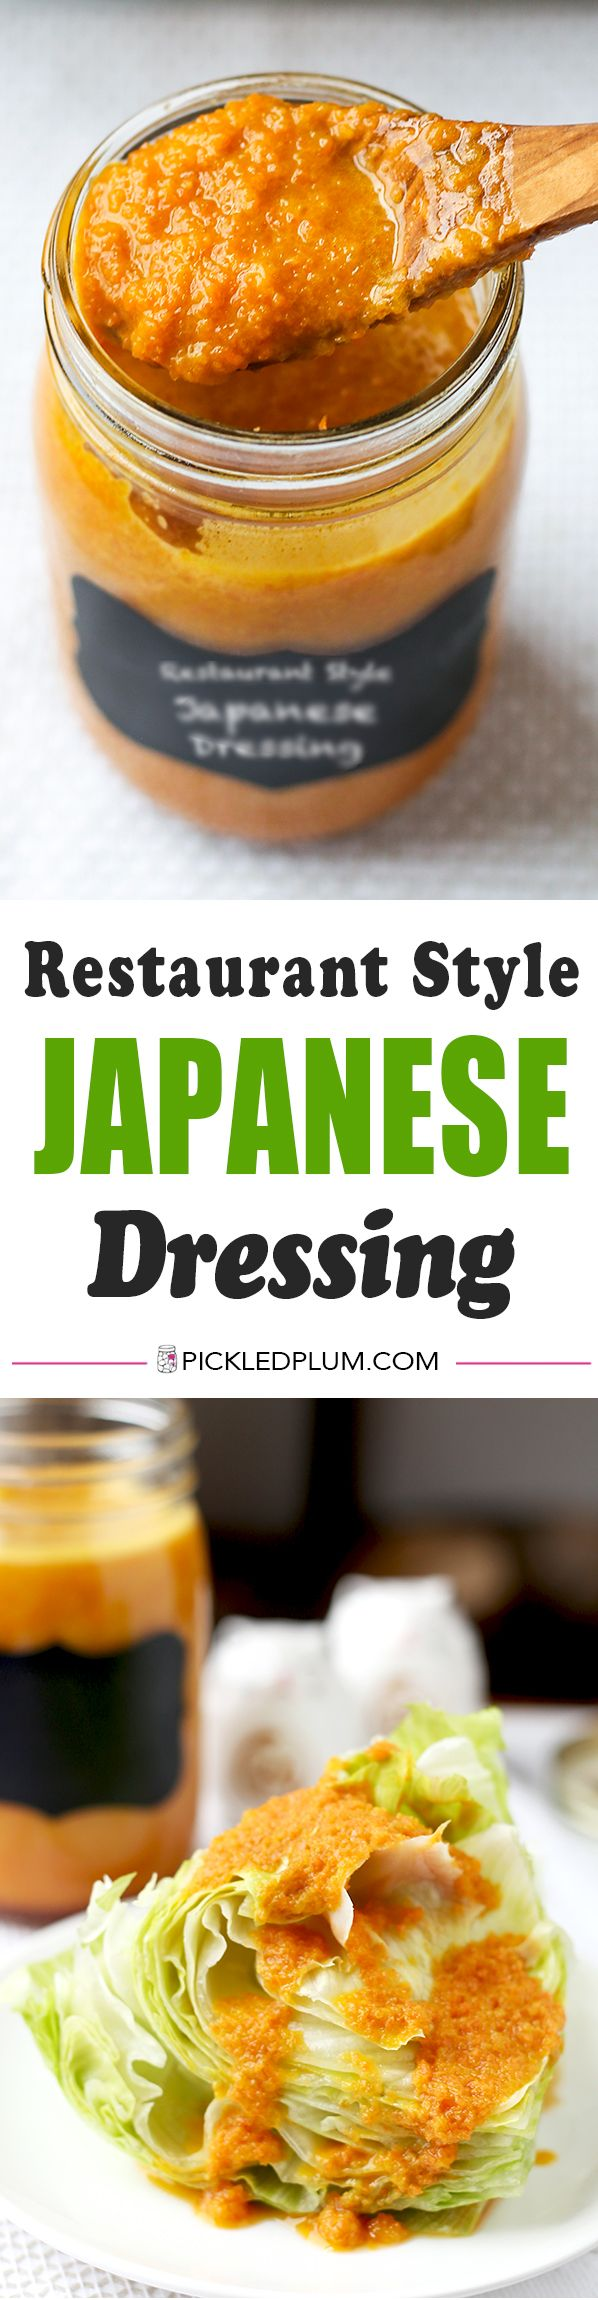 Restaurant Style Japanese Dressing - Make this iconic and delicious Japanese Restaurant Style Ginger Dressing Recipe in less than 10 minutes! Japanese food recipes | homemade salad dressing recipes | ginger carrot dressing | Japanese cuisine | pickledplum